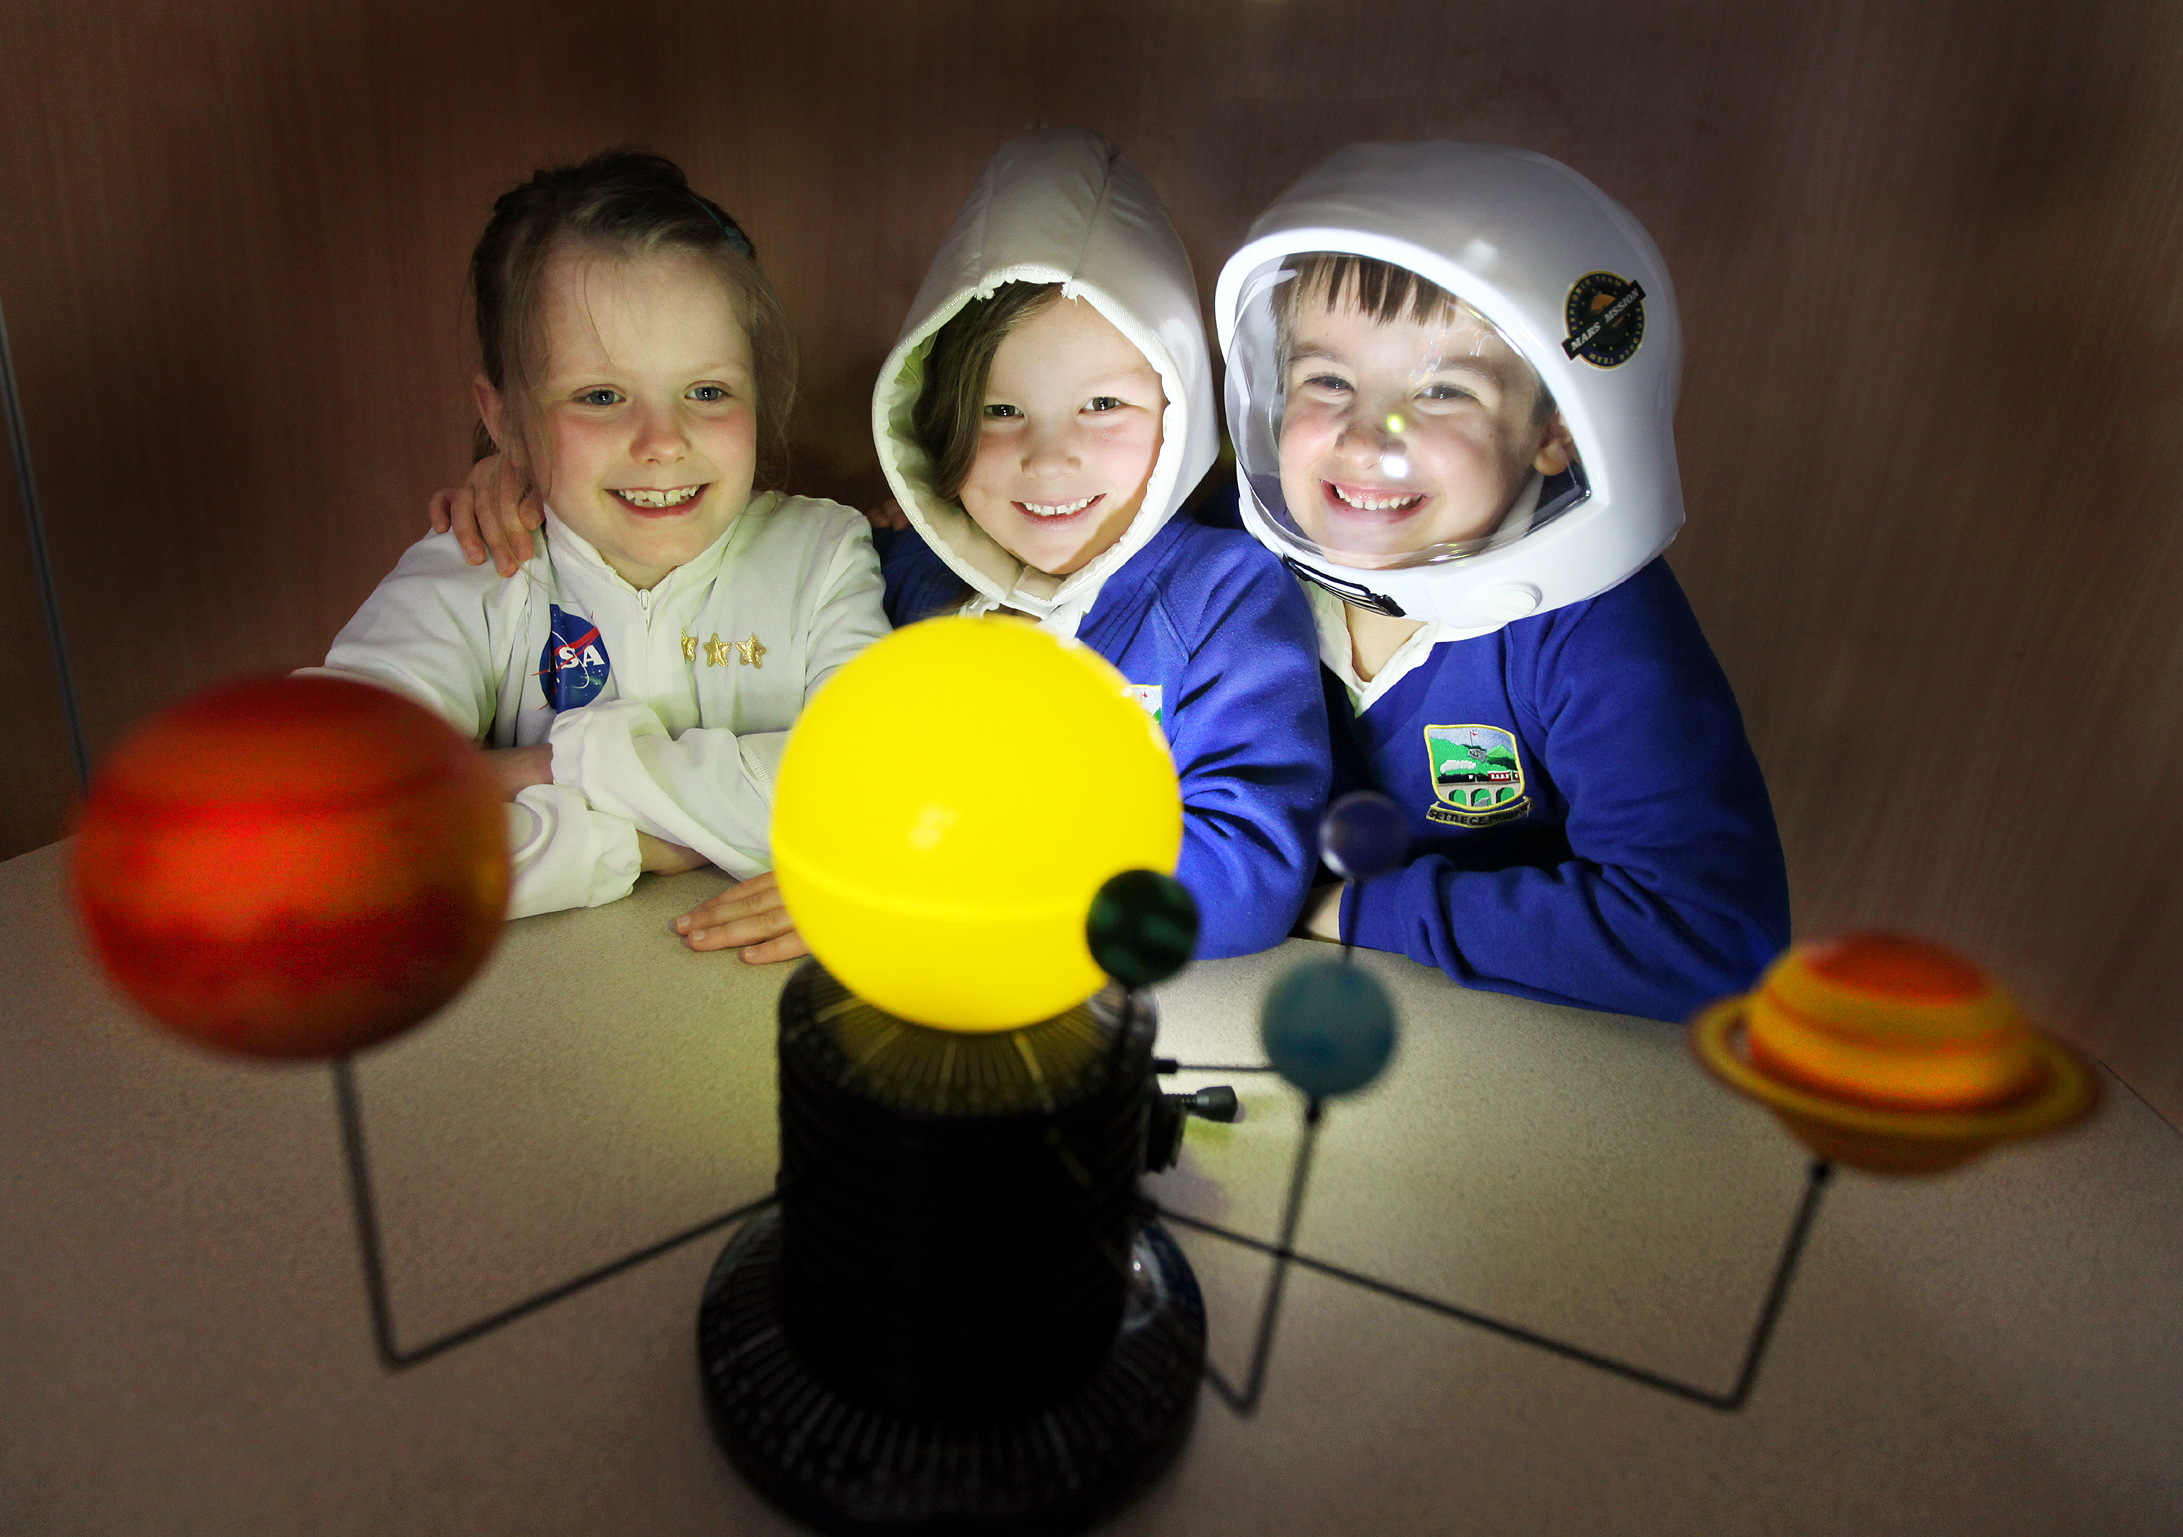 WOULD-BE ASTRONAUTS: Holly Brown, Isla Paton and Antonio Caggiano with the sun and surrounding planets